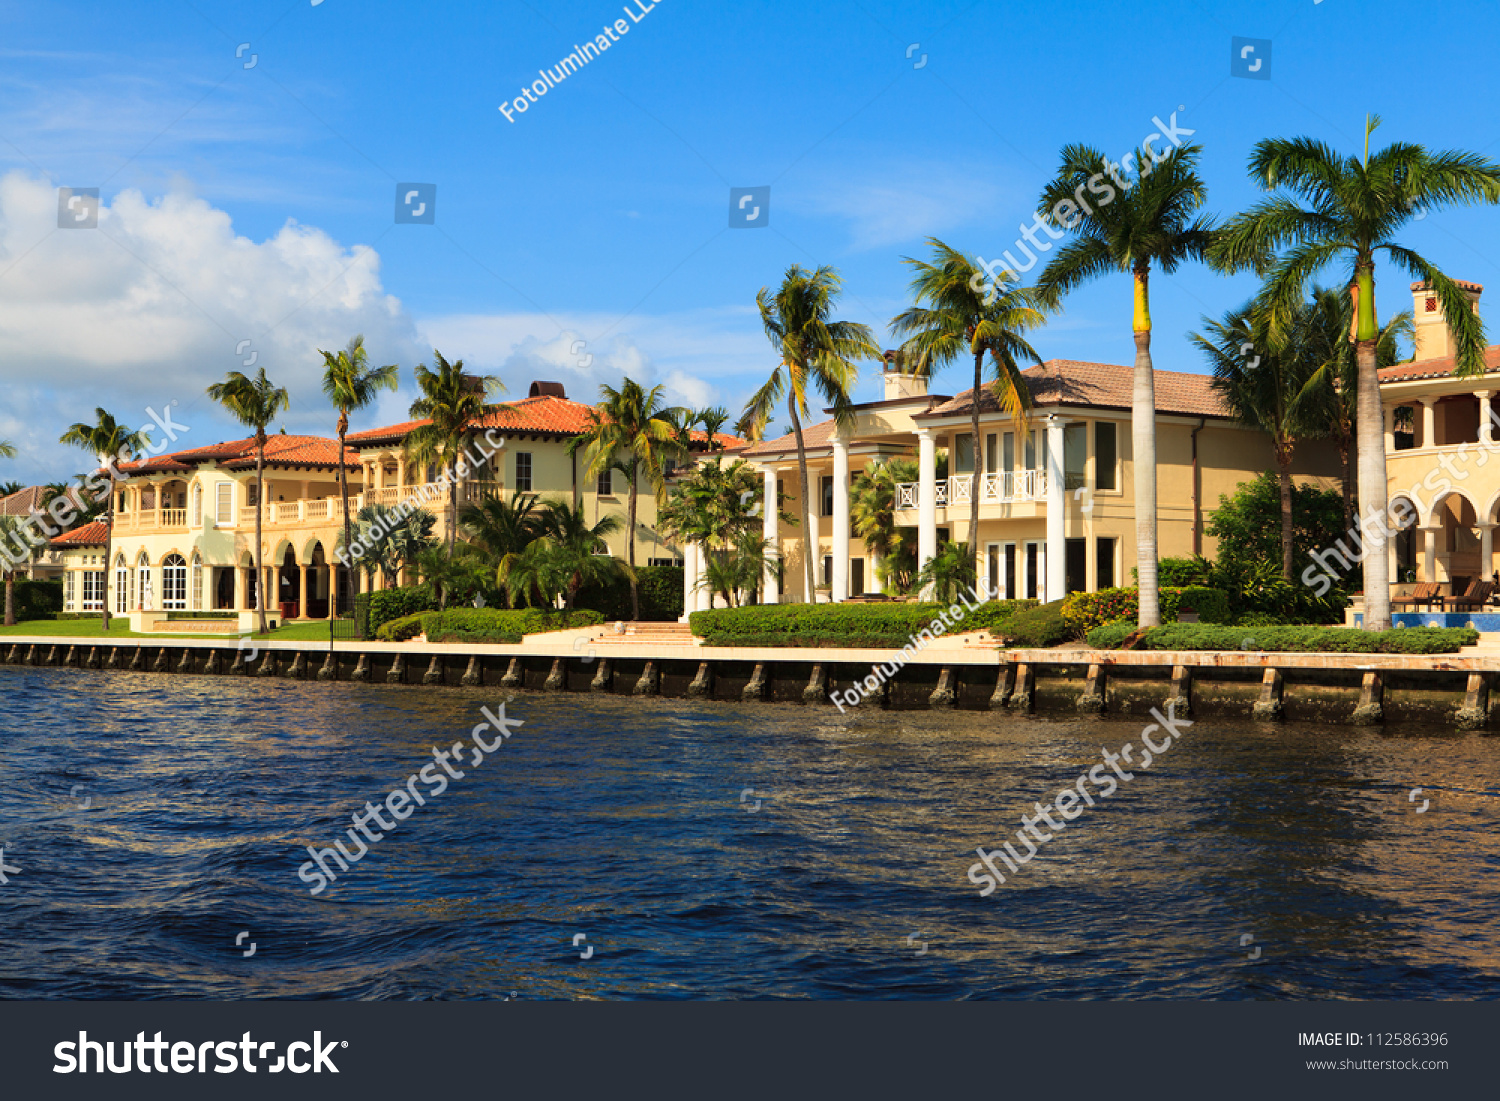 View Of The Fort Lauderdale Intracoastal Waterway From A